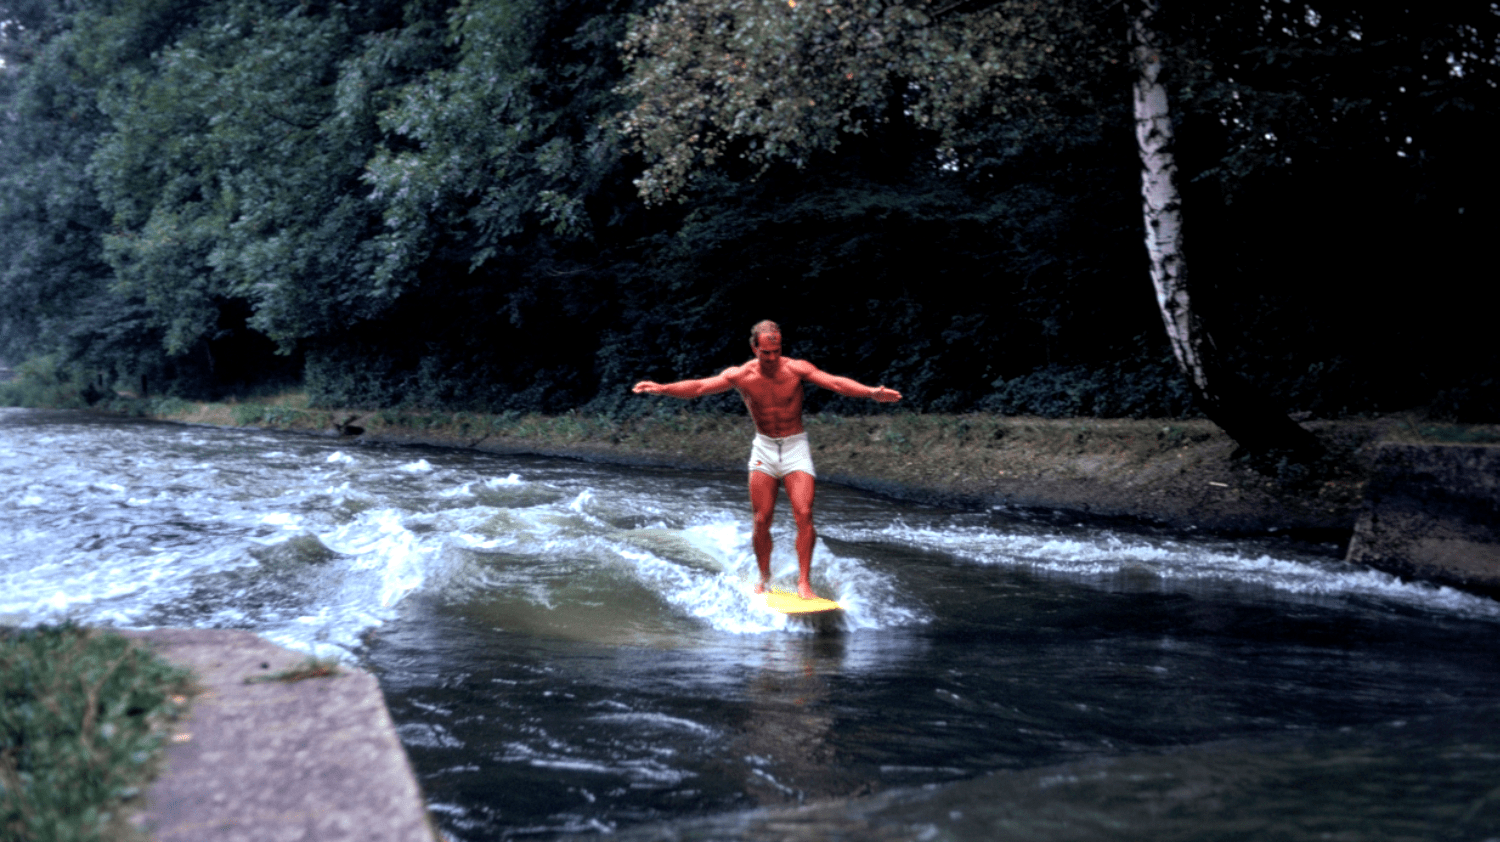 the first-ever photo taken of a surfer riding a rapid in Munich